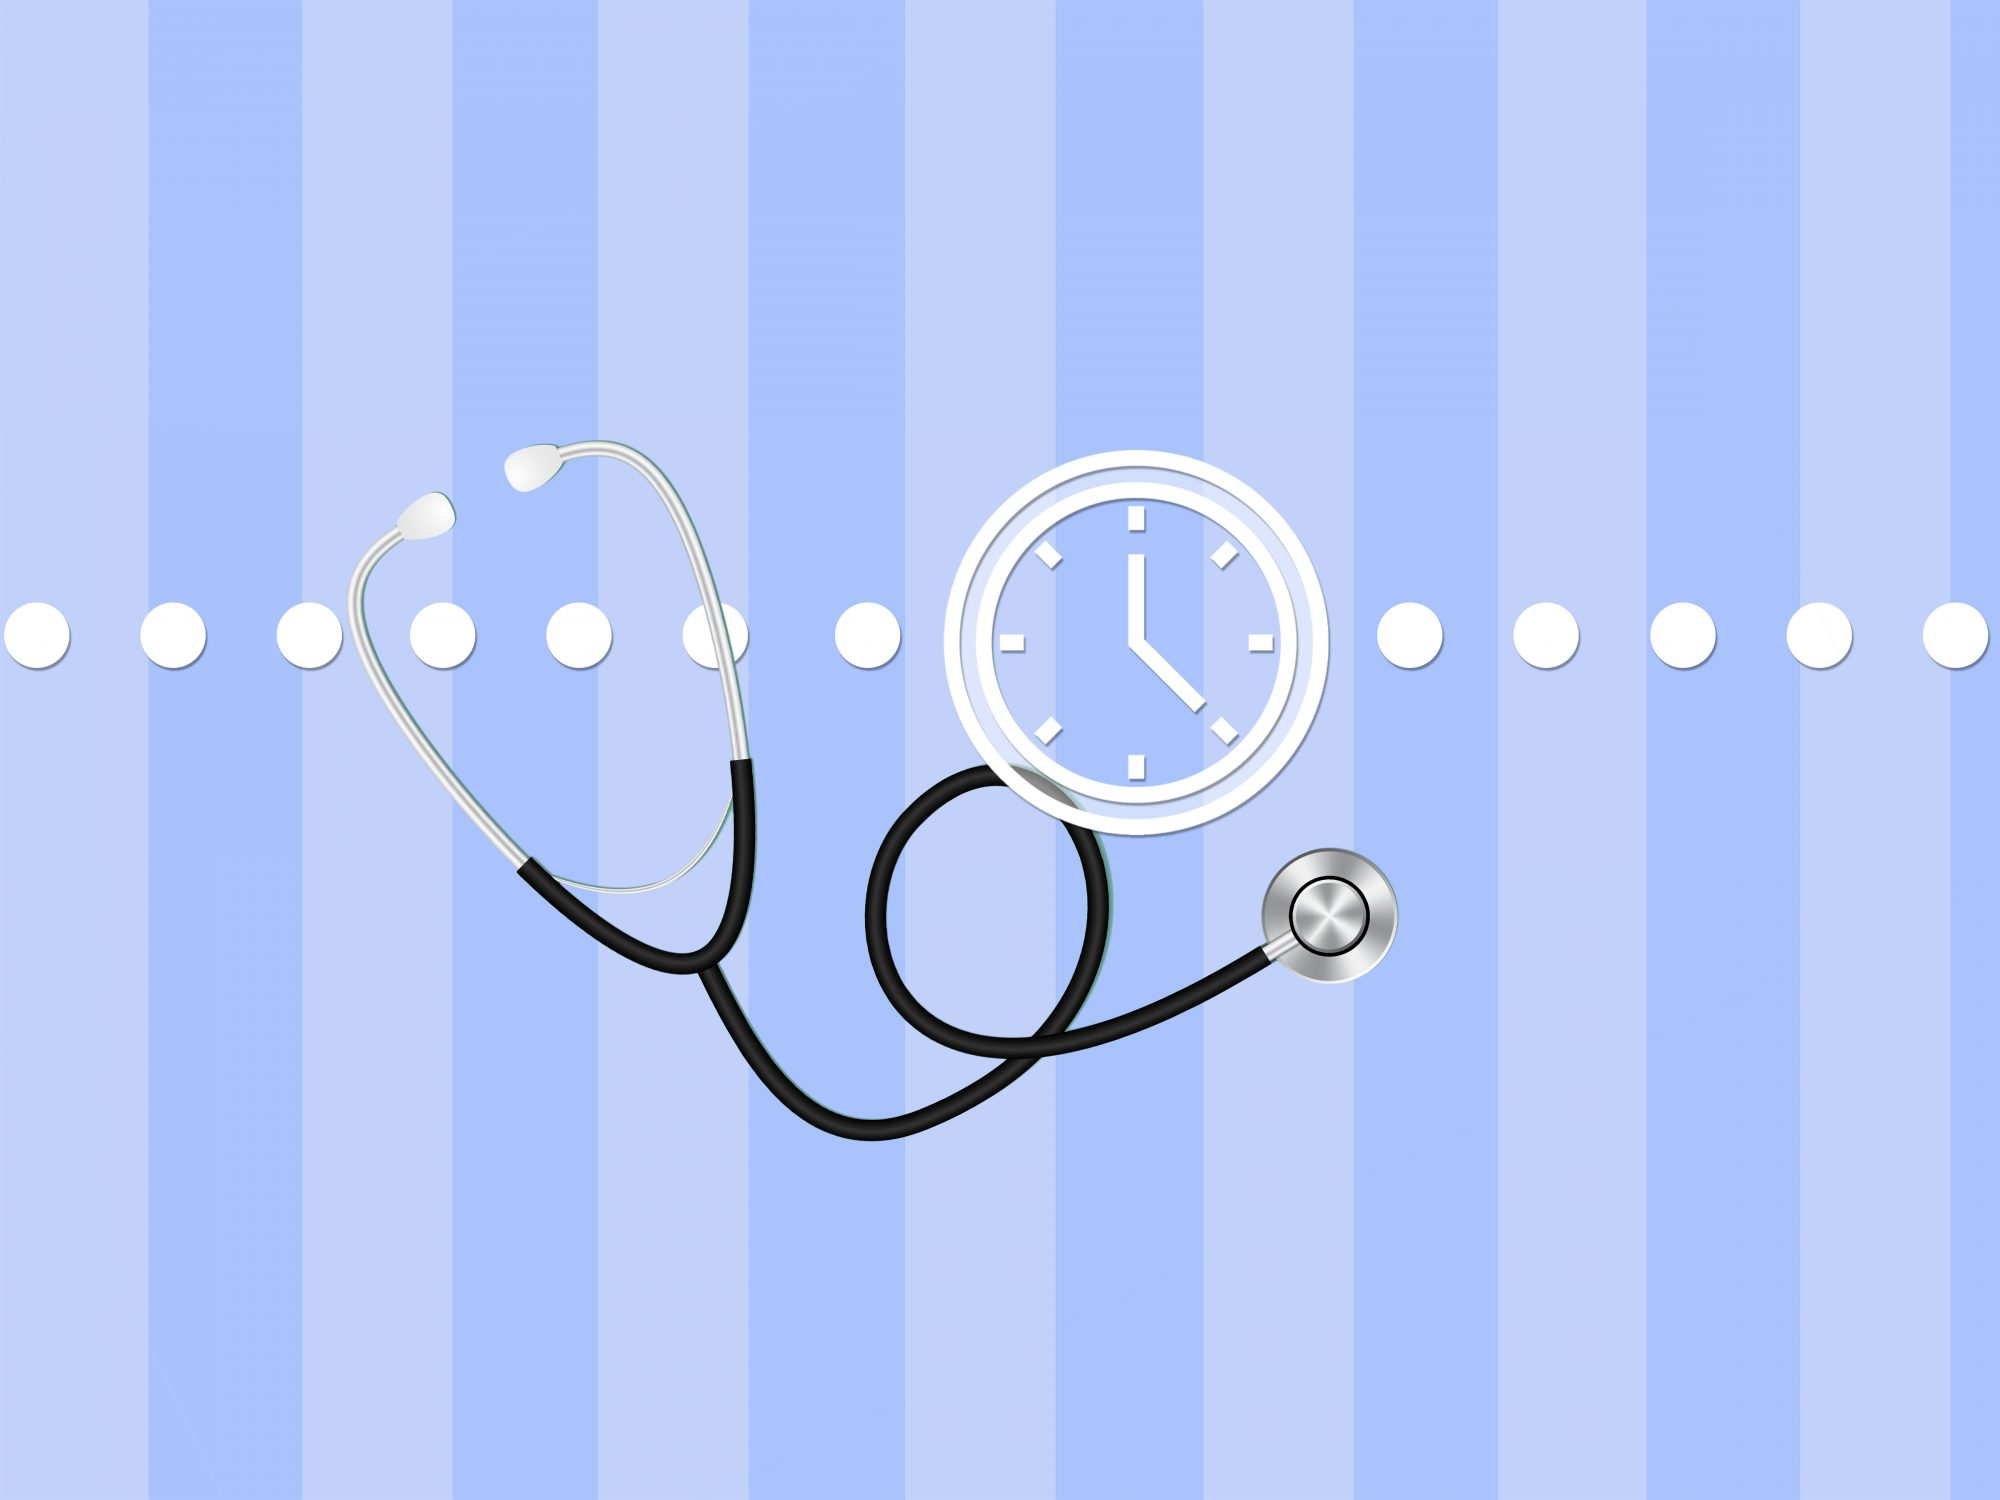 Shortcuts to healthcare problems: stethoscope on blue background